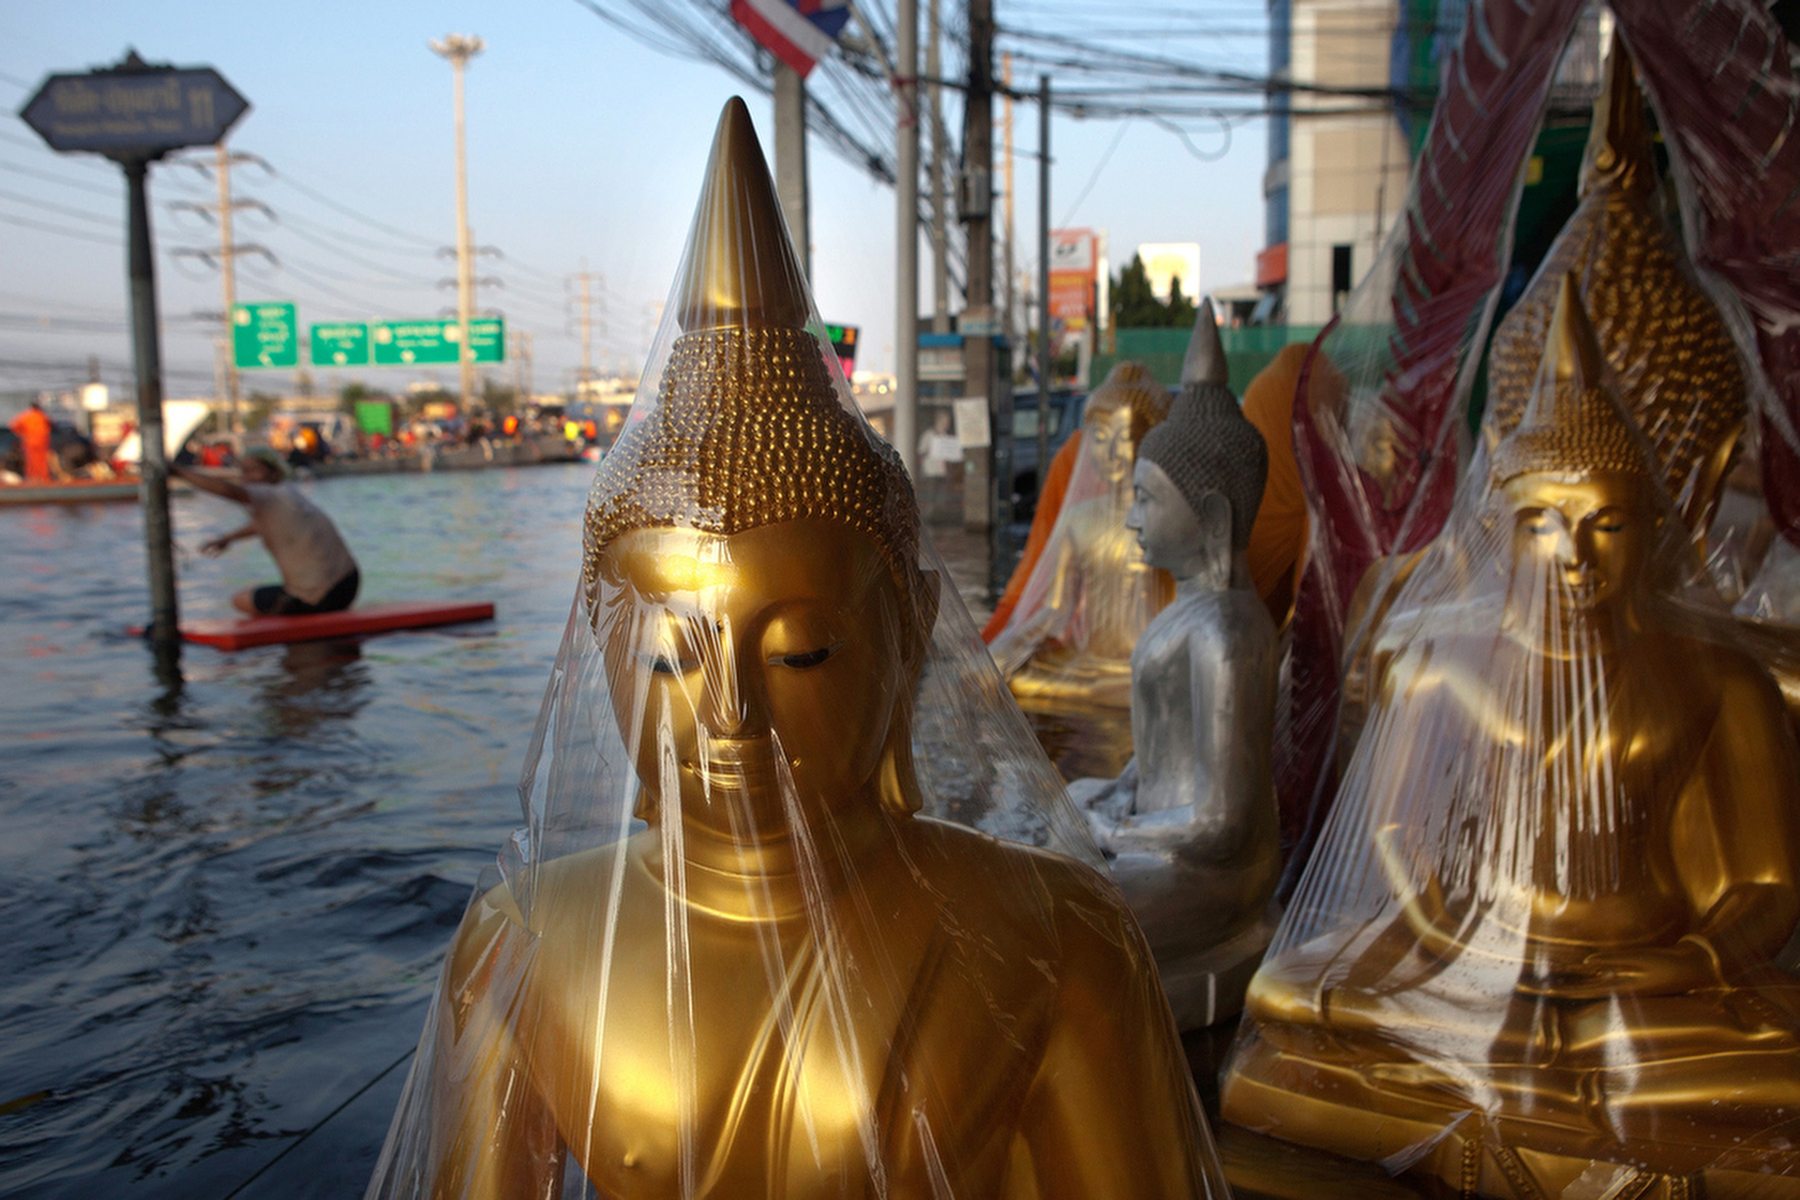 RANGSIT,THAILAND - OCTOBER 24rd: A flooded shop selling buddha statues is seen along the flooded streets in Rangsit on the outskirts of Bangkok October 24, 2011 in Bangkok, Thailand. Hundreds of factories closed in the central Thai province of Ayutthaya and Nonthaburi as the waters come closer to threaten Bangkok as well. Around 350 people have died in flood-related incidents since late July according to the Department of Disaster Prevention and Mitigation. Thailand is experiencing the worst flooding in 50 years with damages running as high as $6 billion which could increase of the floods swamp Bangkok.(Photo by Paula Bronstein /Getty Images)